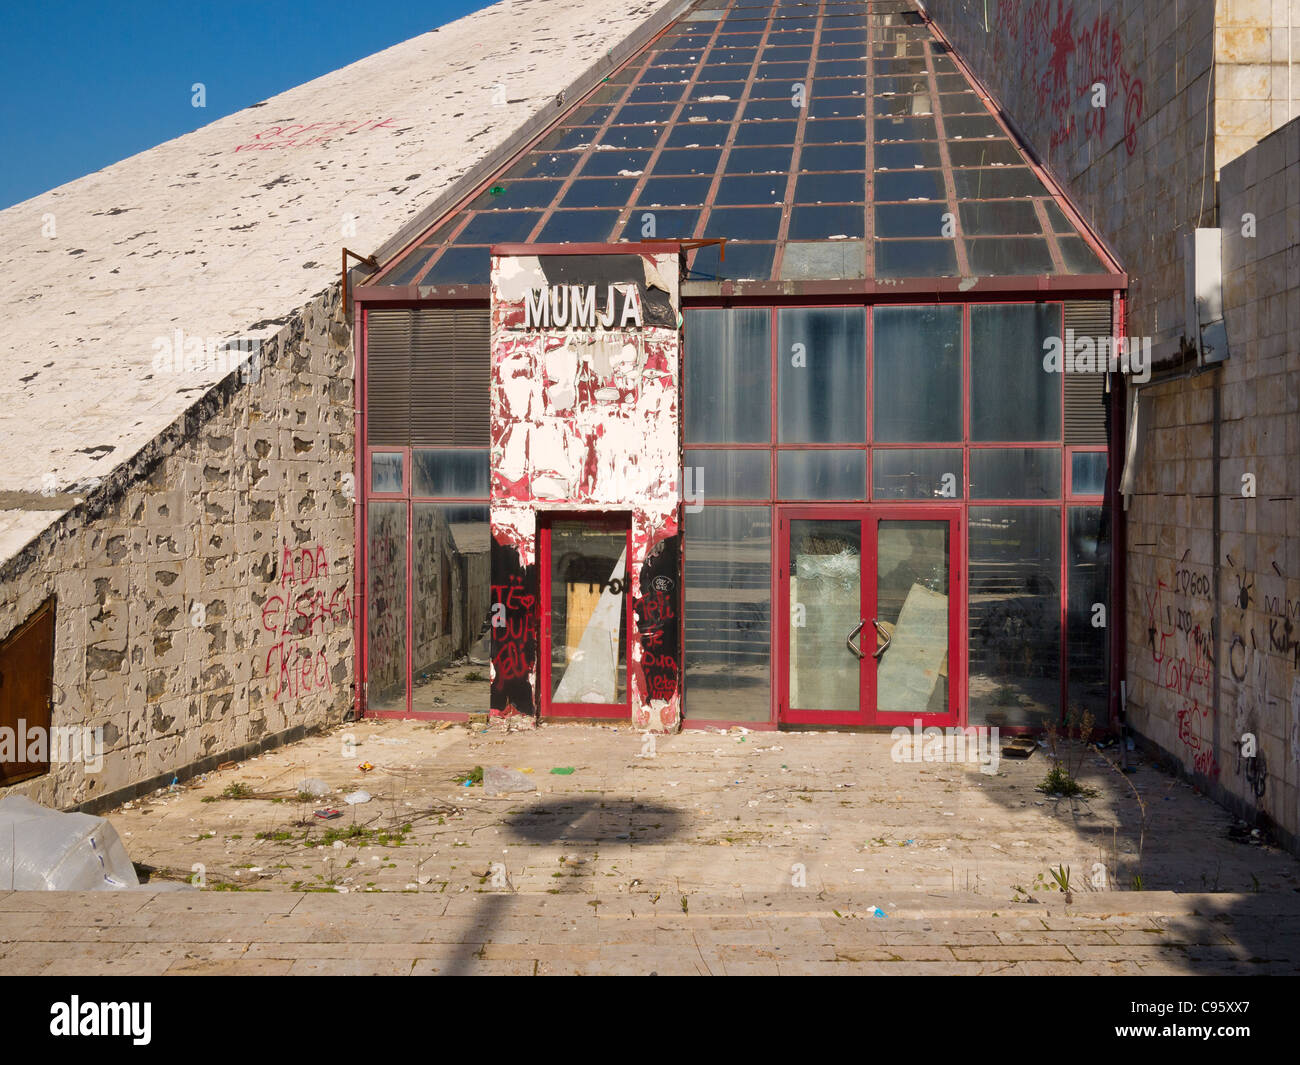 The pyramid building, Albanian International Centre of Culture, in Tirana, Albania, is in a state of disrepair. - Stock Image